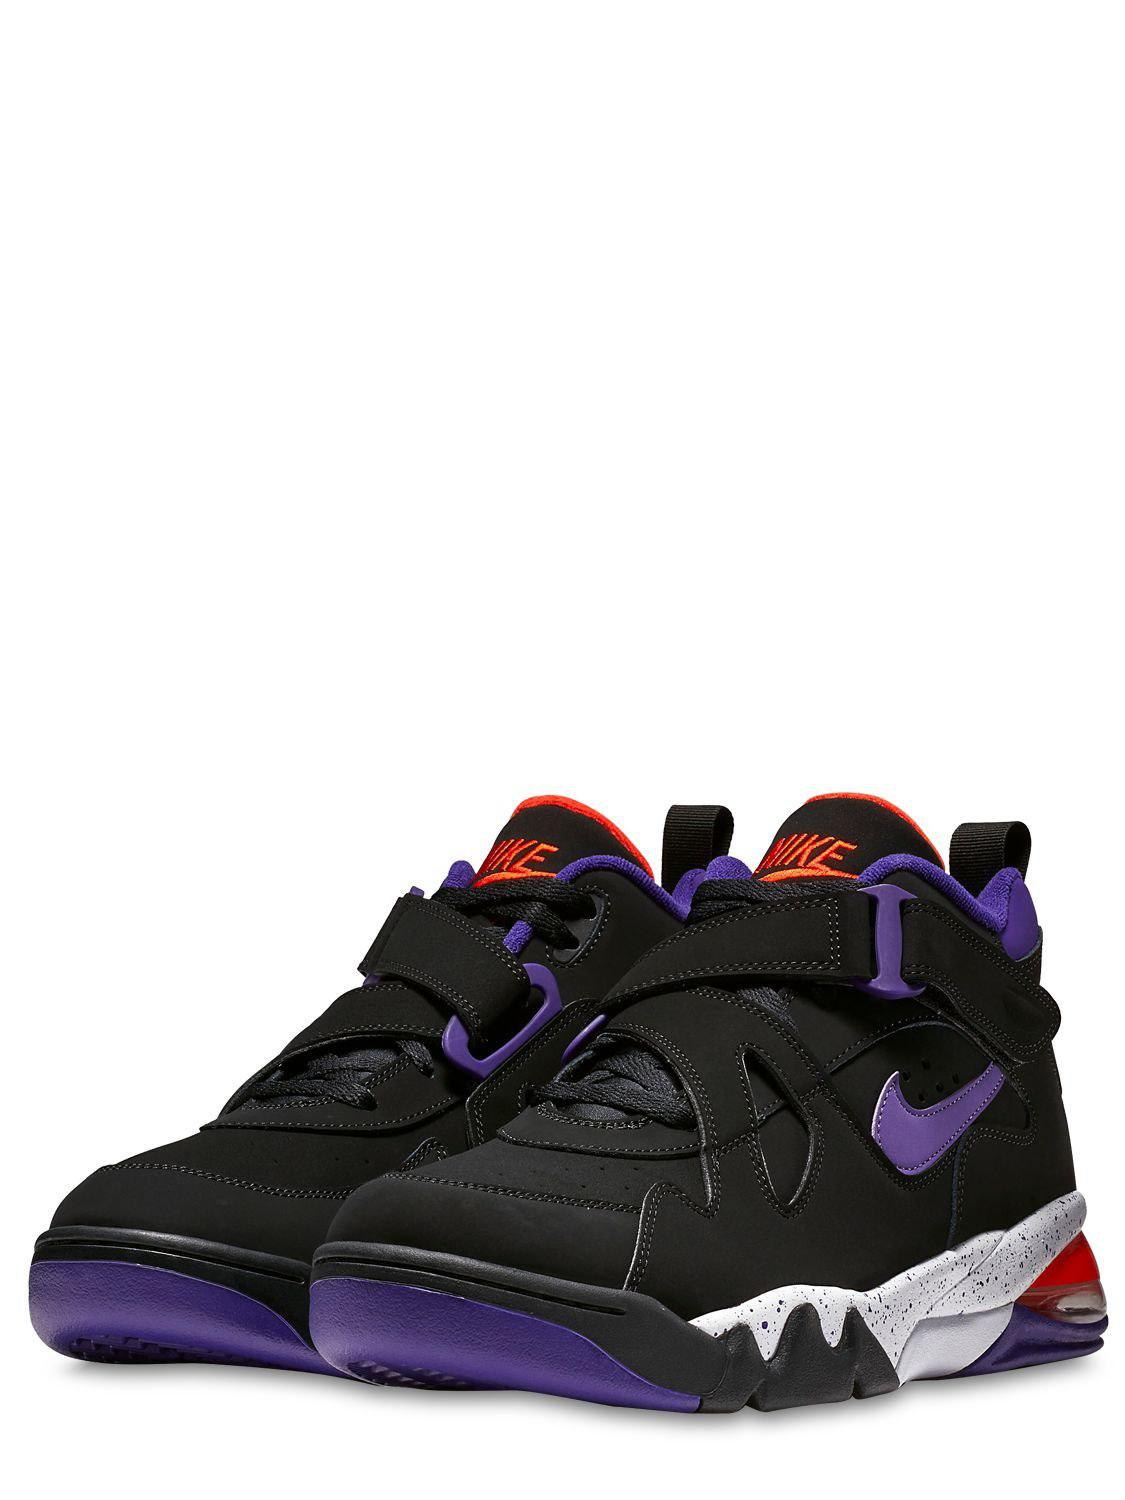 ... arrives 09f53 d2d77 Nike - Black Air Force Max Cb Sneakers for Men -  Lyst. ... 39ac2e936